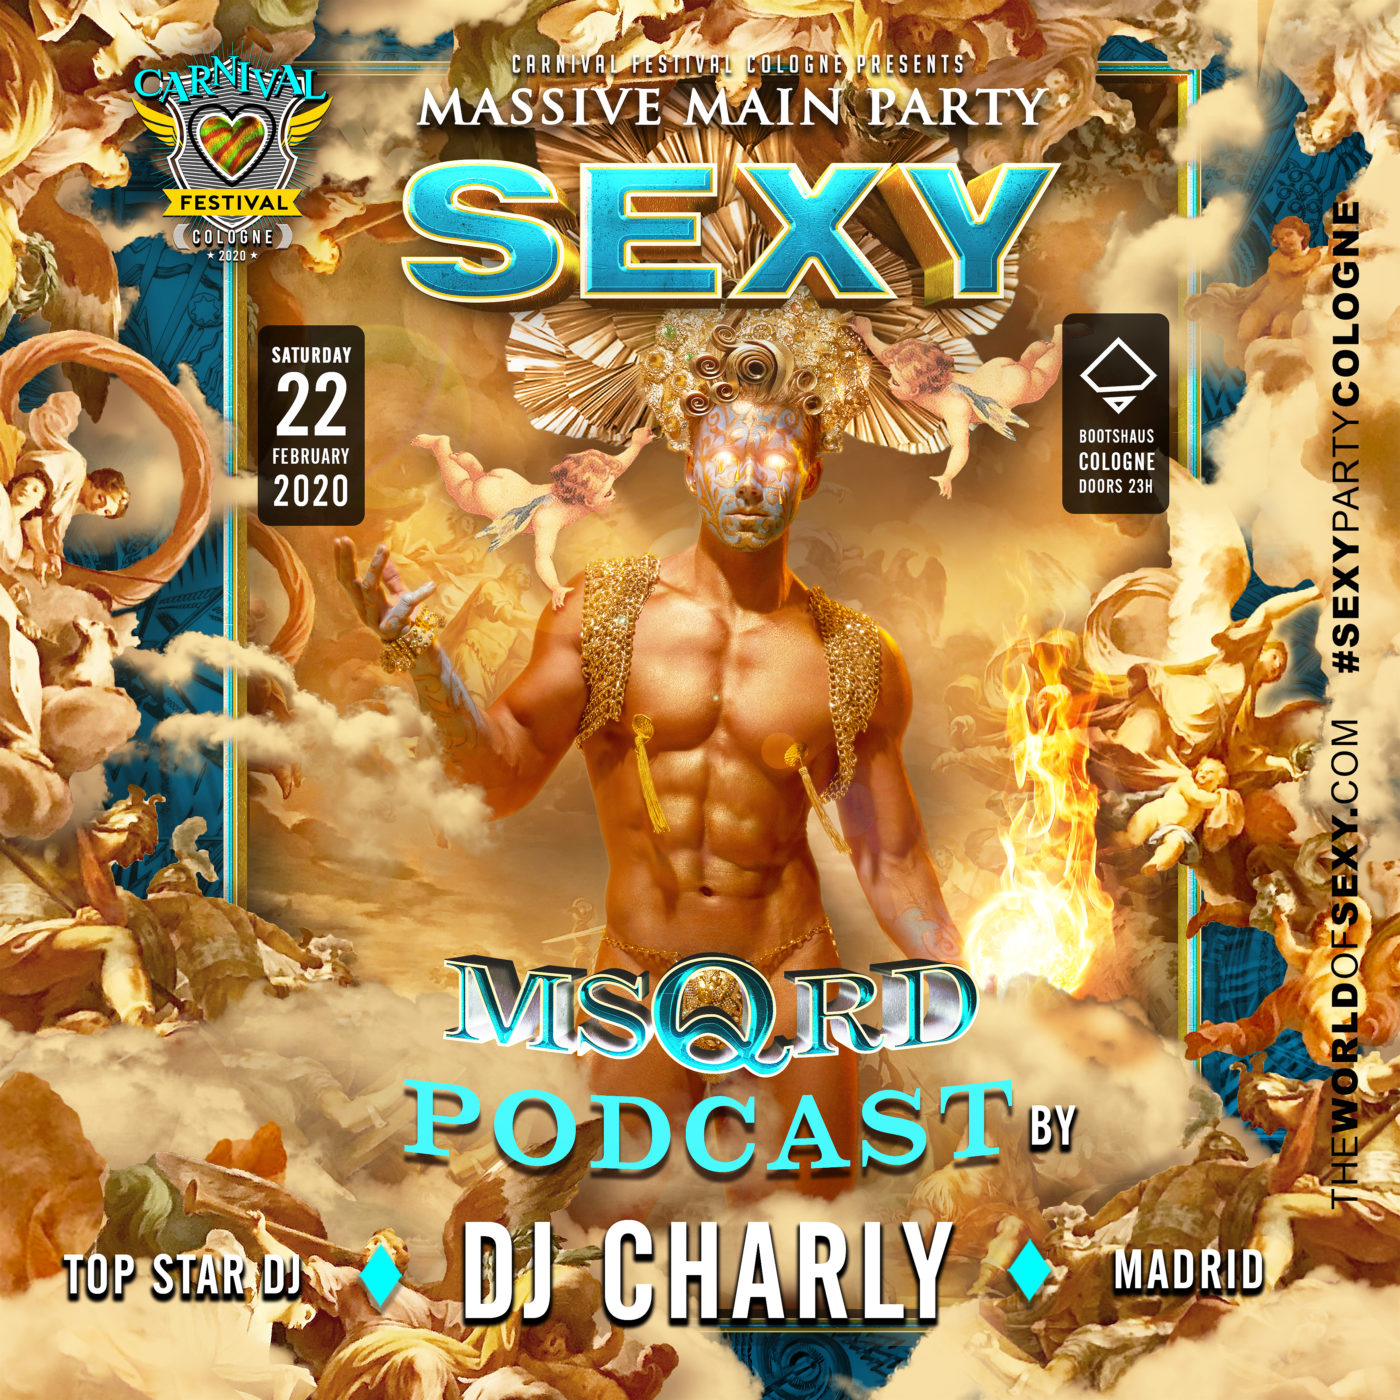 , SEXY MSQRD-PODCAST produced by StarDJ Charly!